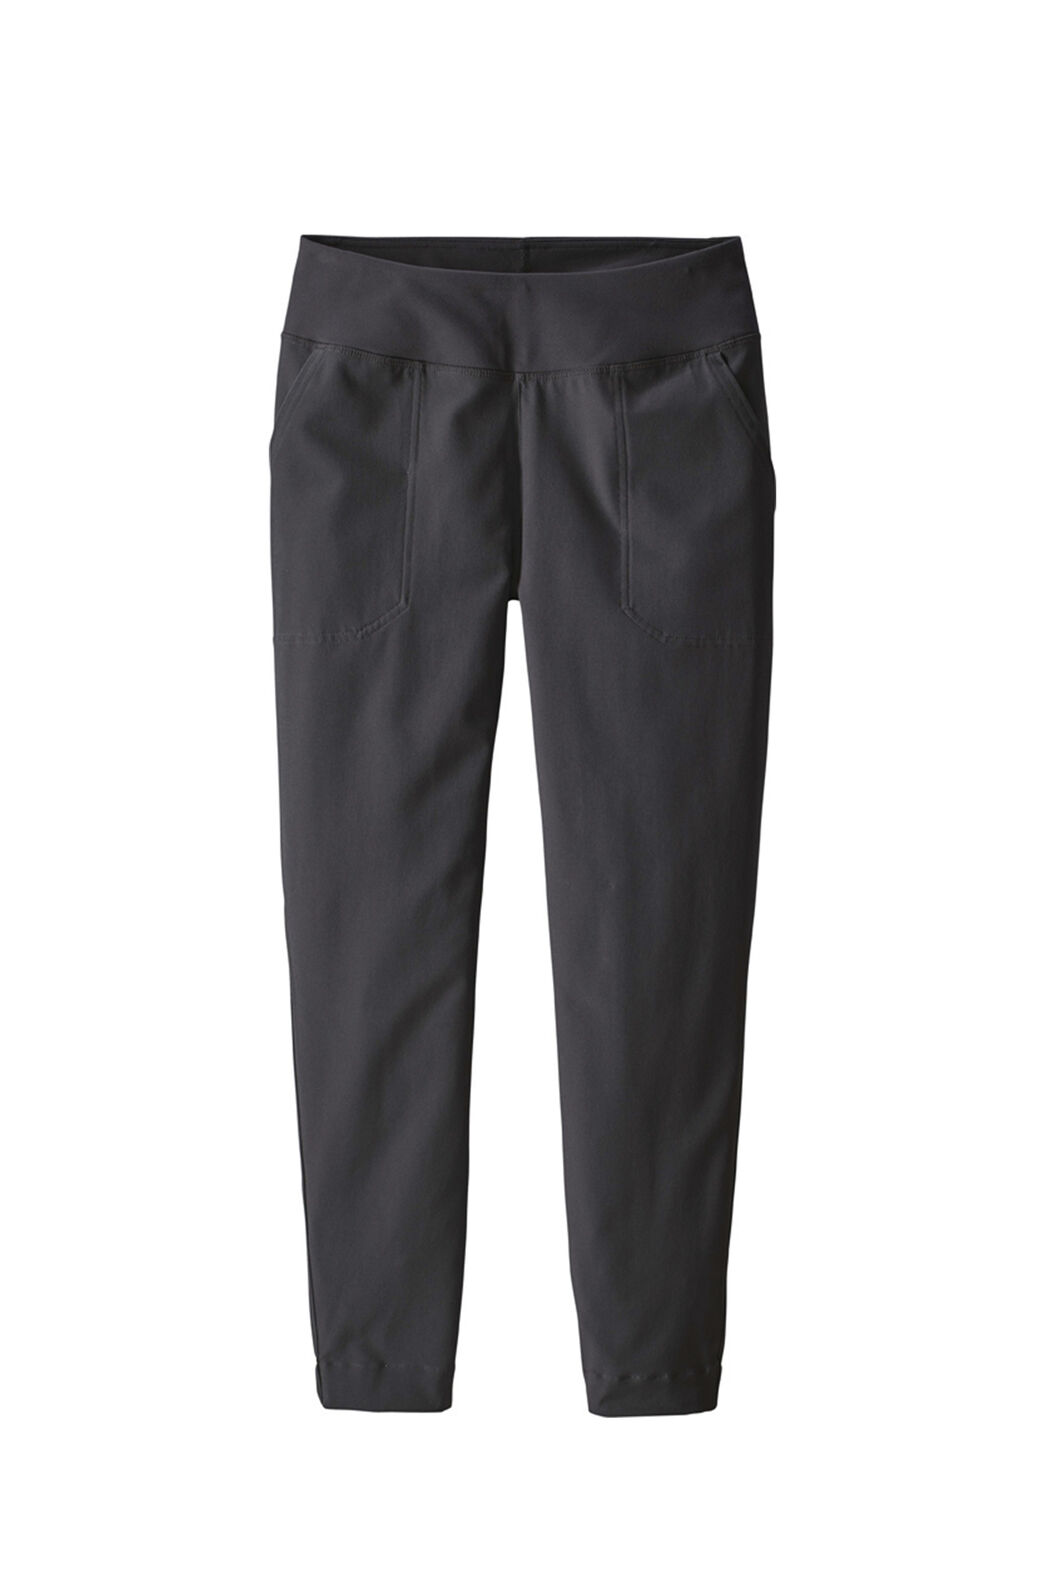 Patagonia Women's Happy Hike Pants, Black, hi-res